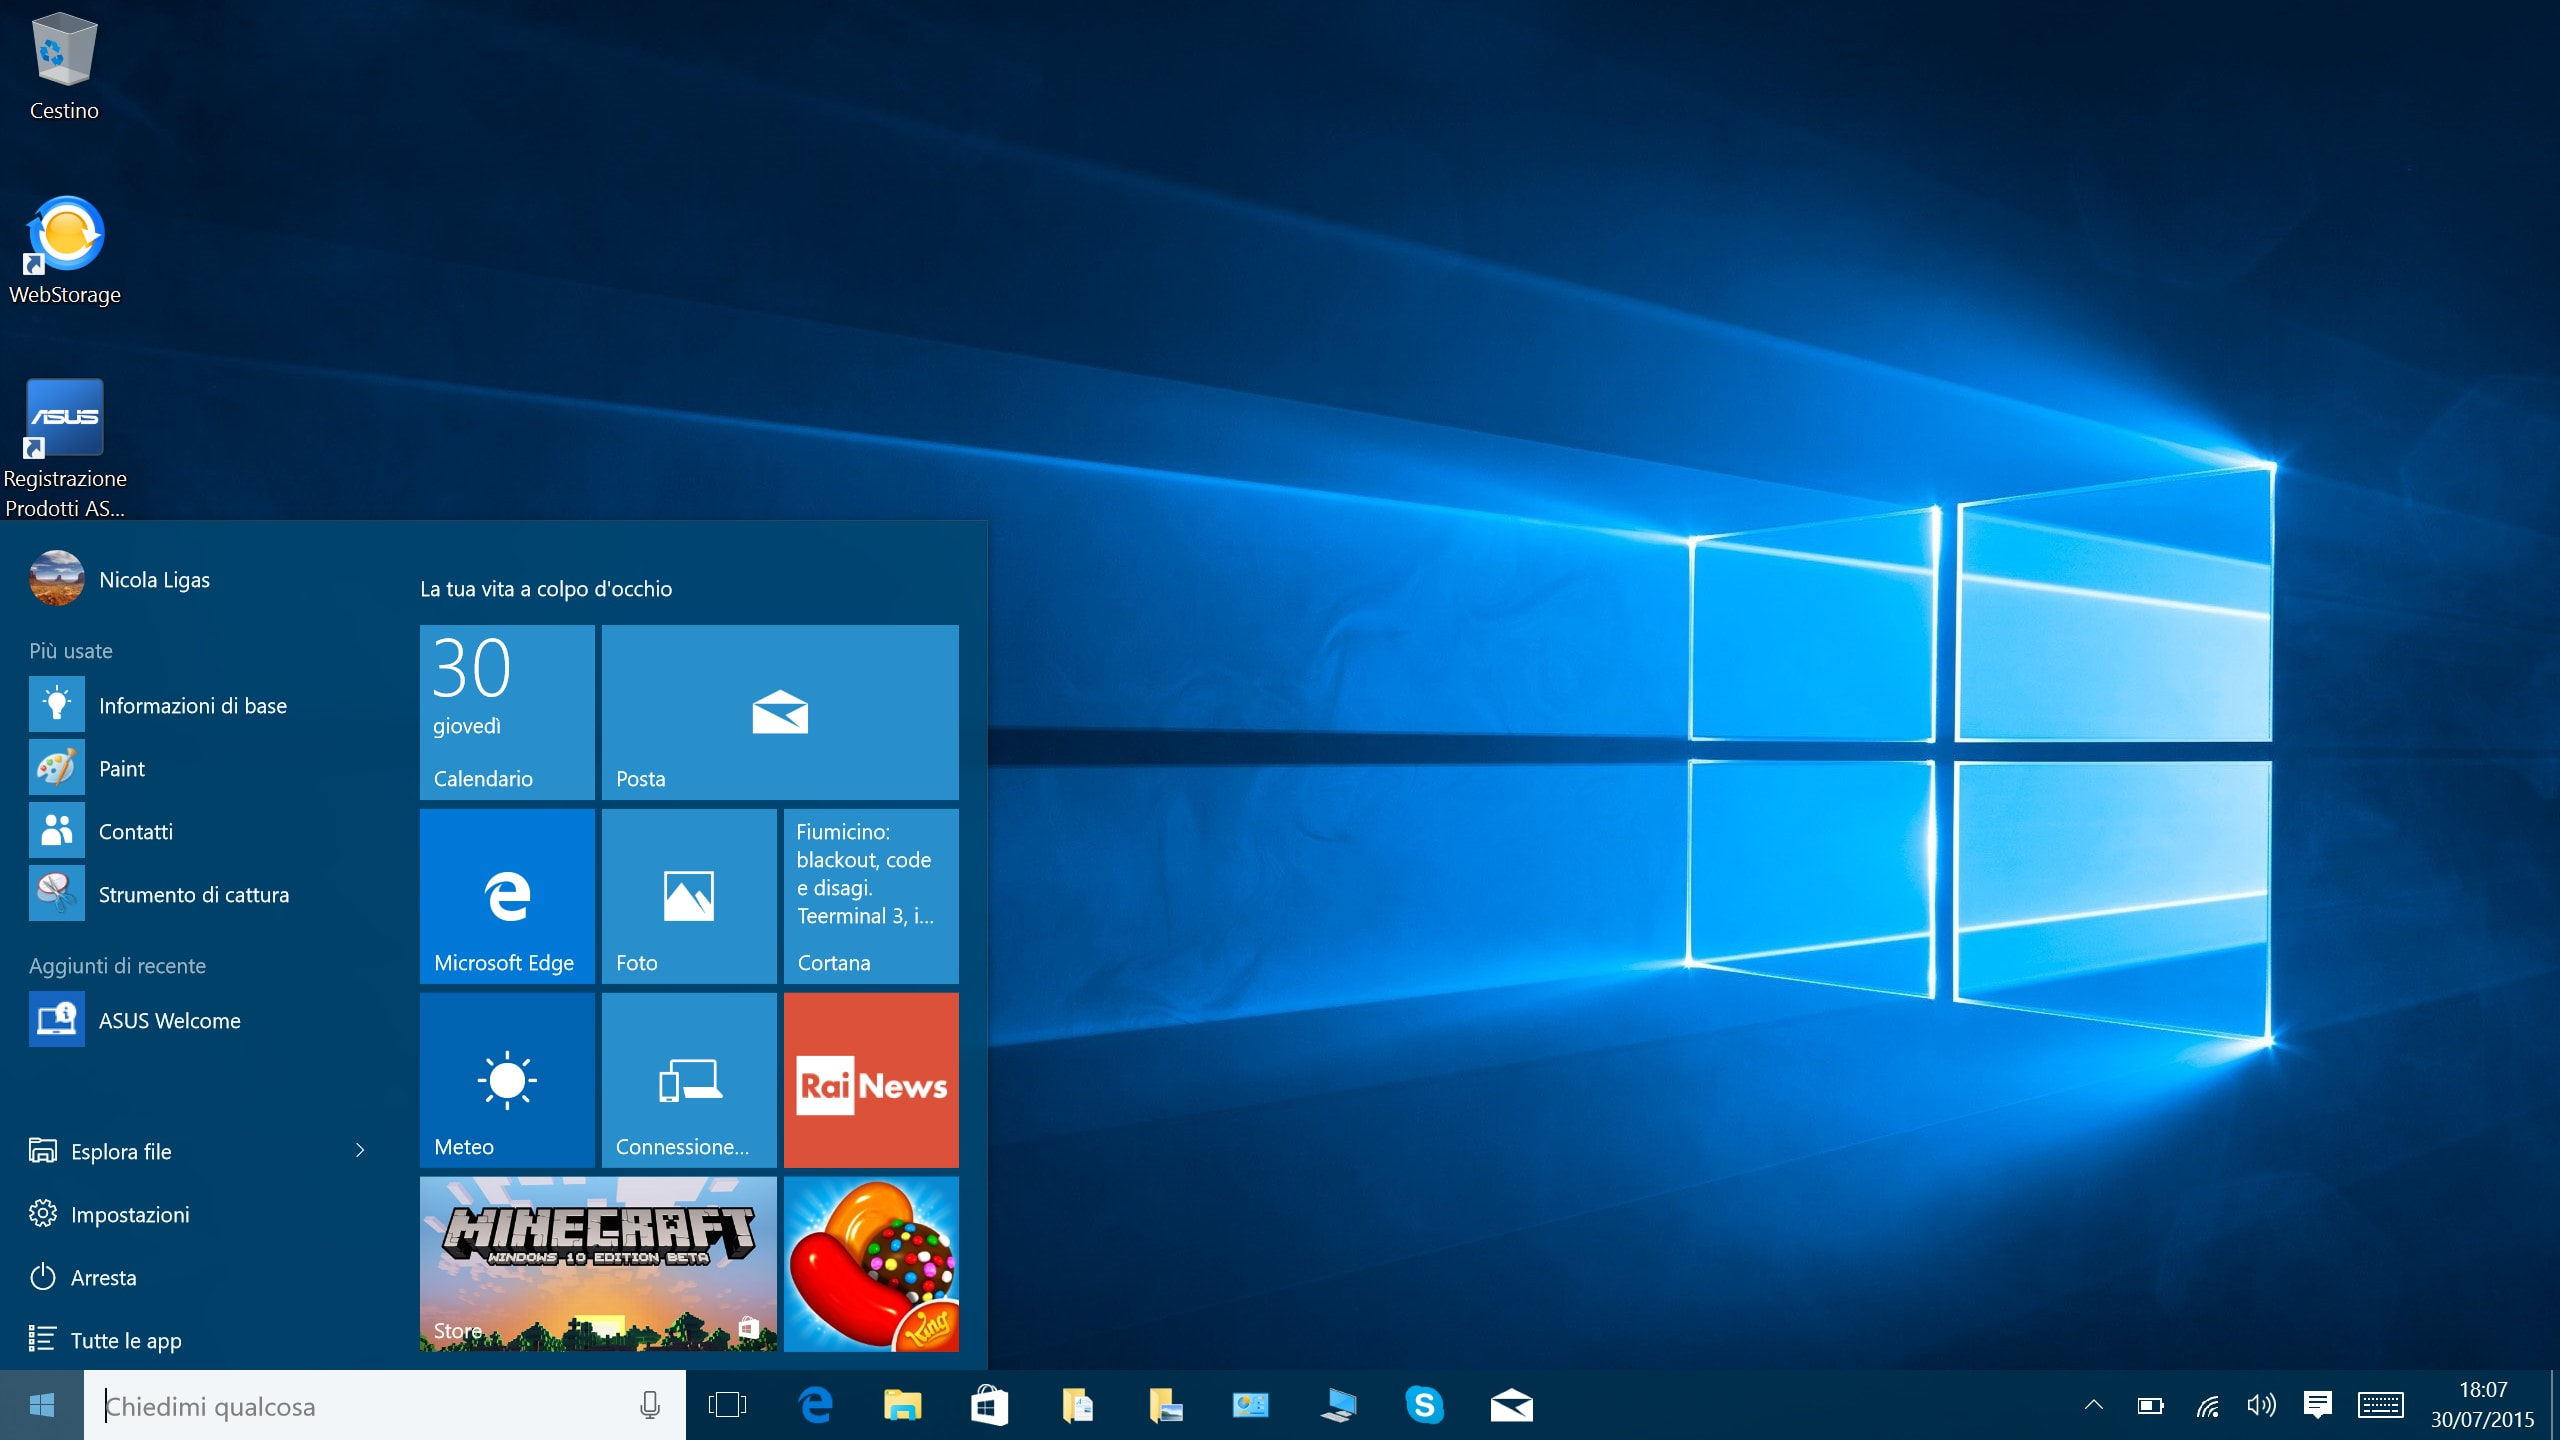 Windows 10 screnshot – 1